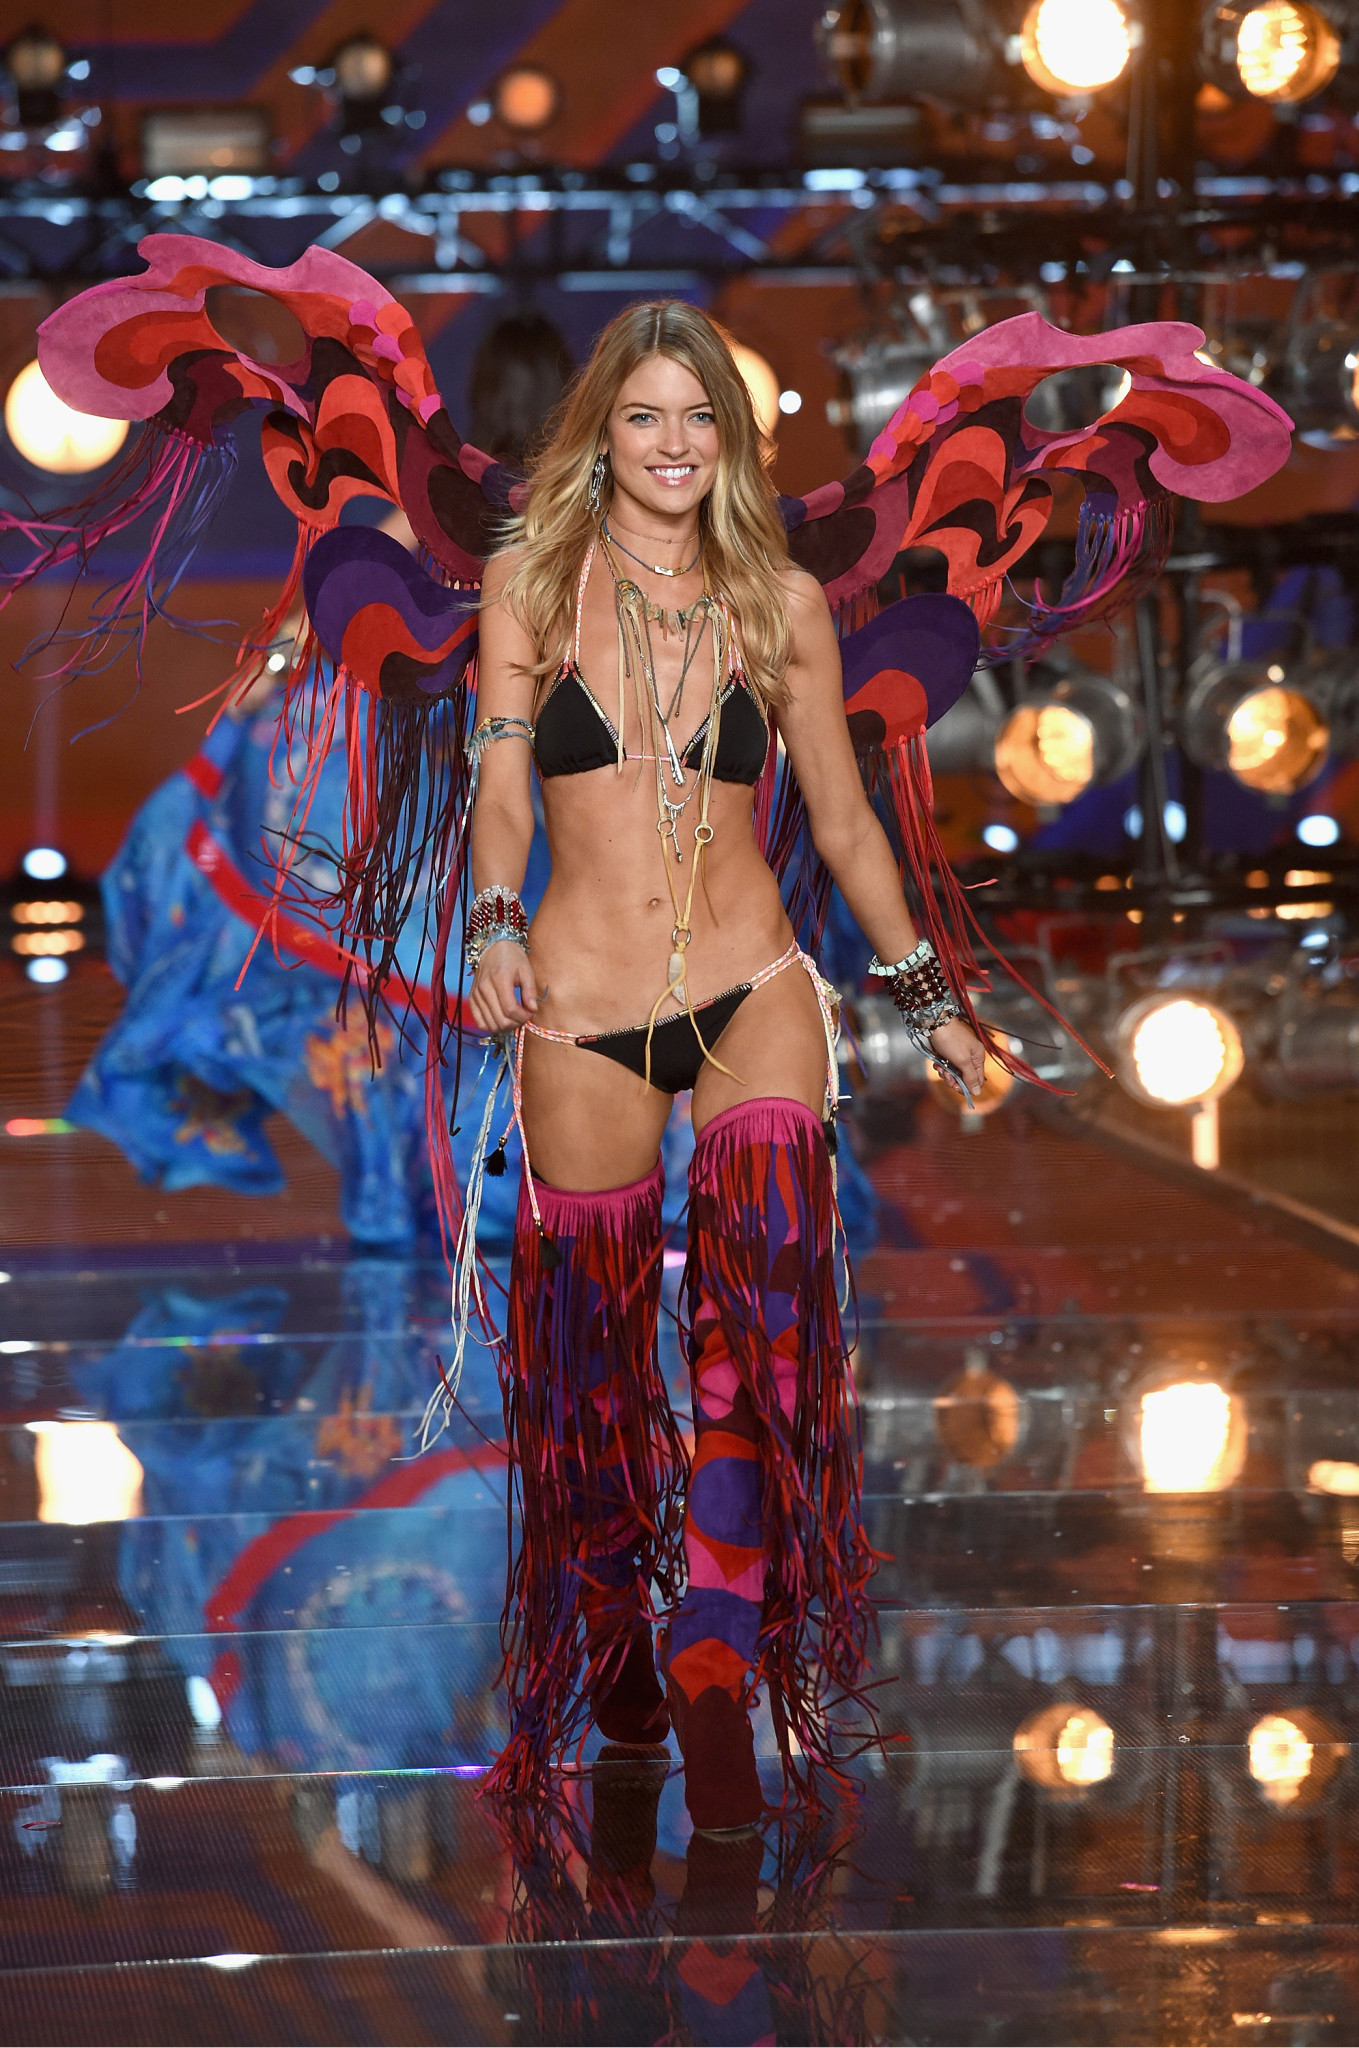 fashion-show-runway-2015-boho-psychadelic-martha-look-7-victorias-secret-hi-res